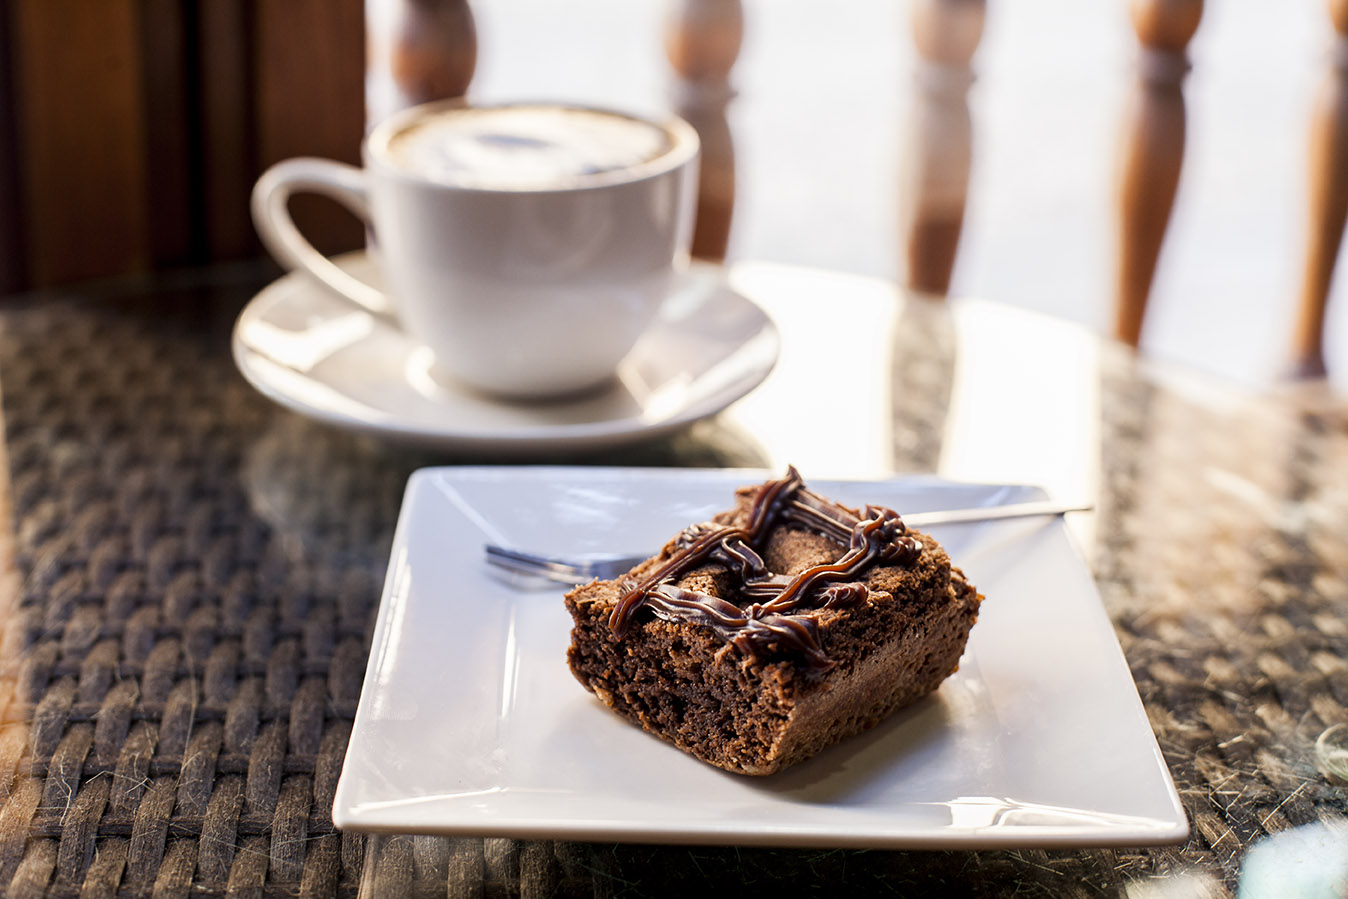 Brownie con capuccino